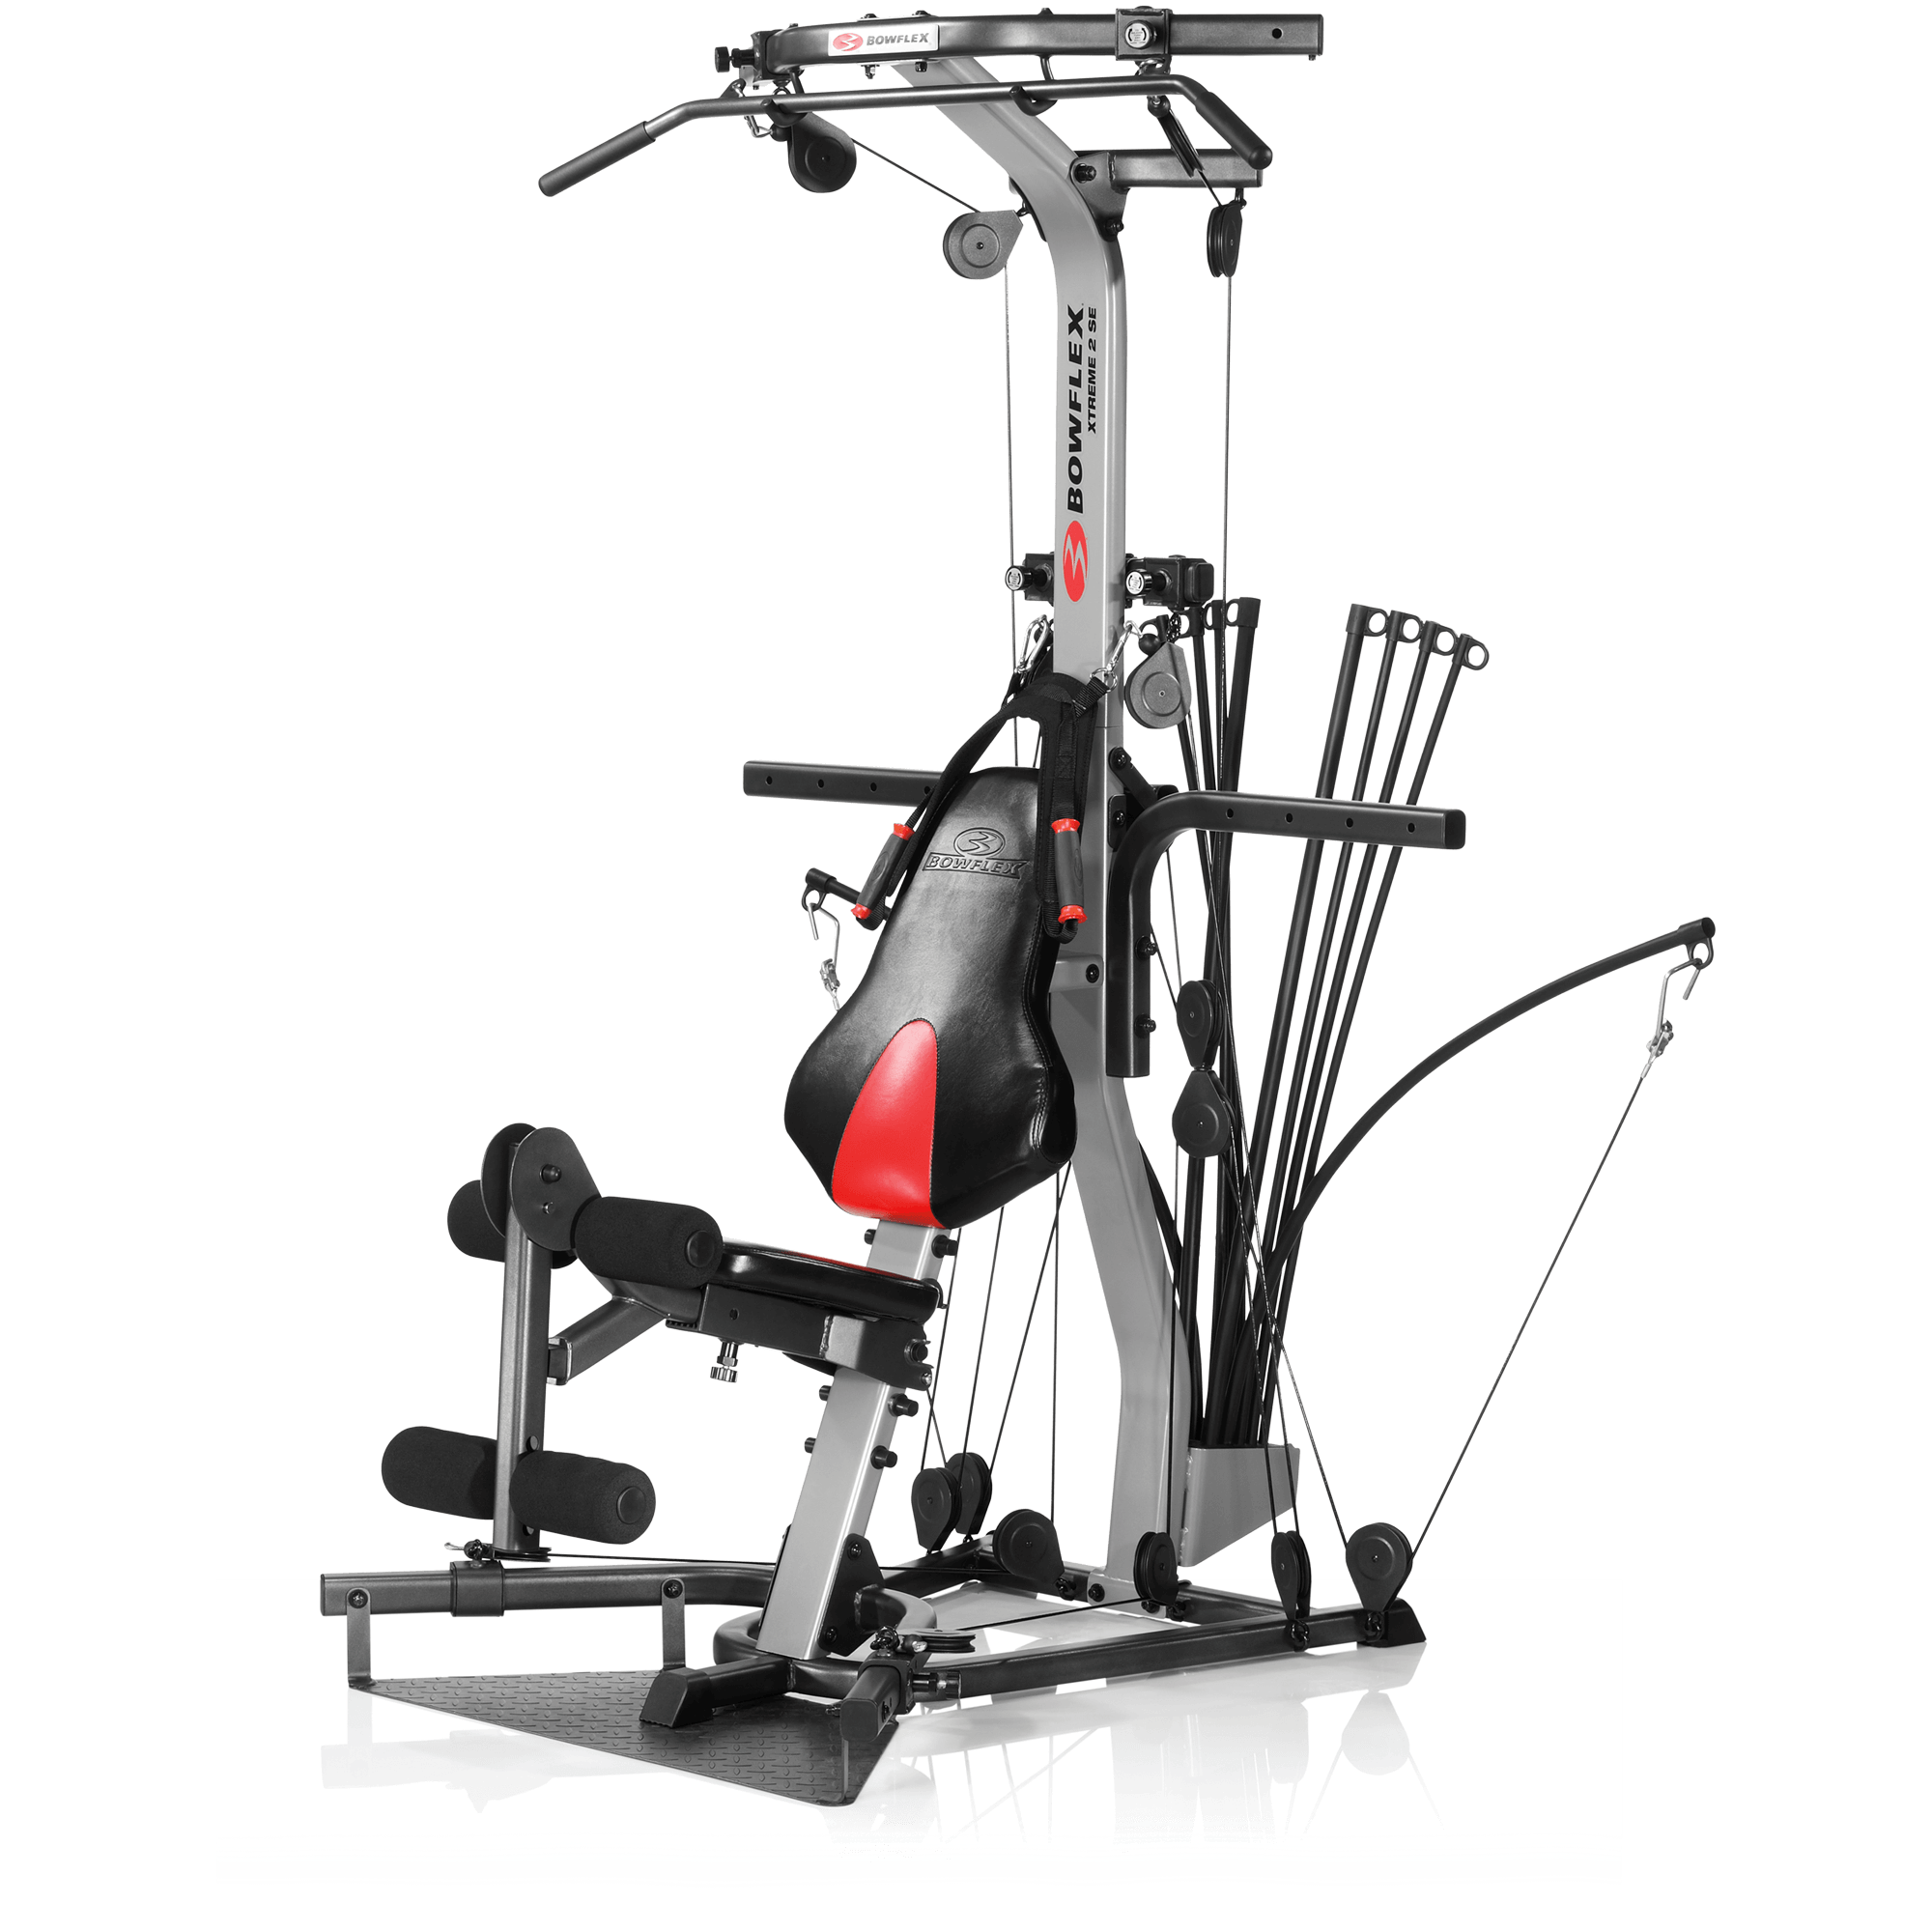 Bowflex Revolution Space Requirements: Bowflex Xtreme 2 SE Home Gym